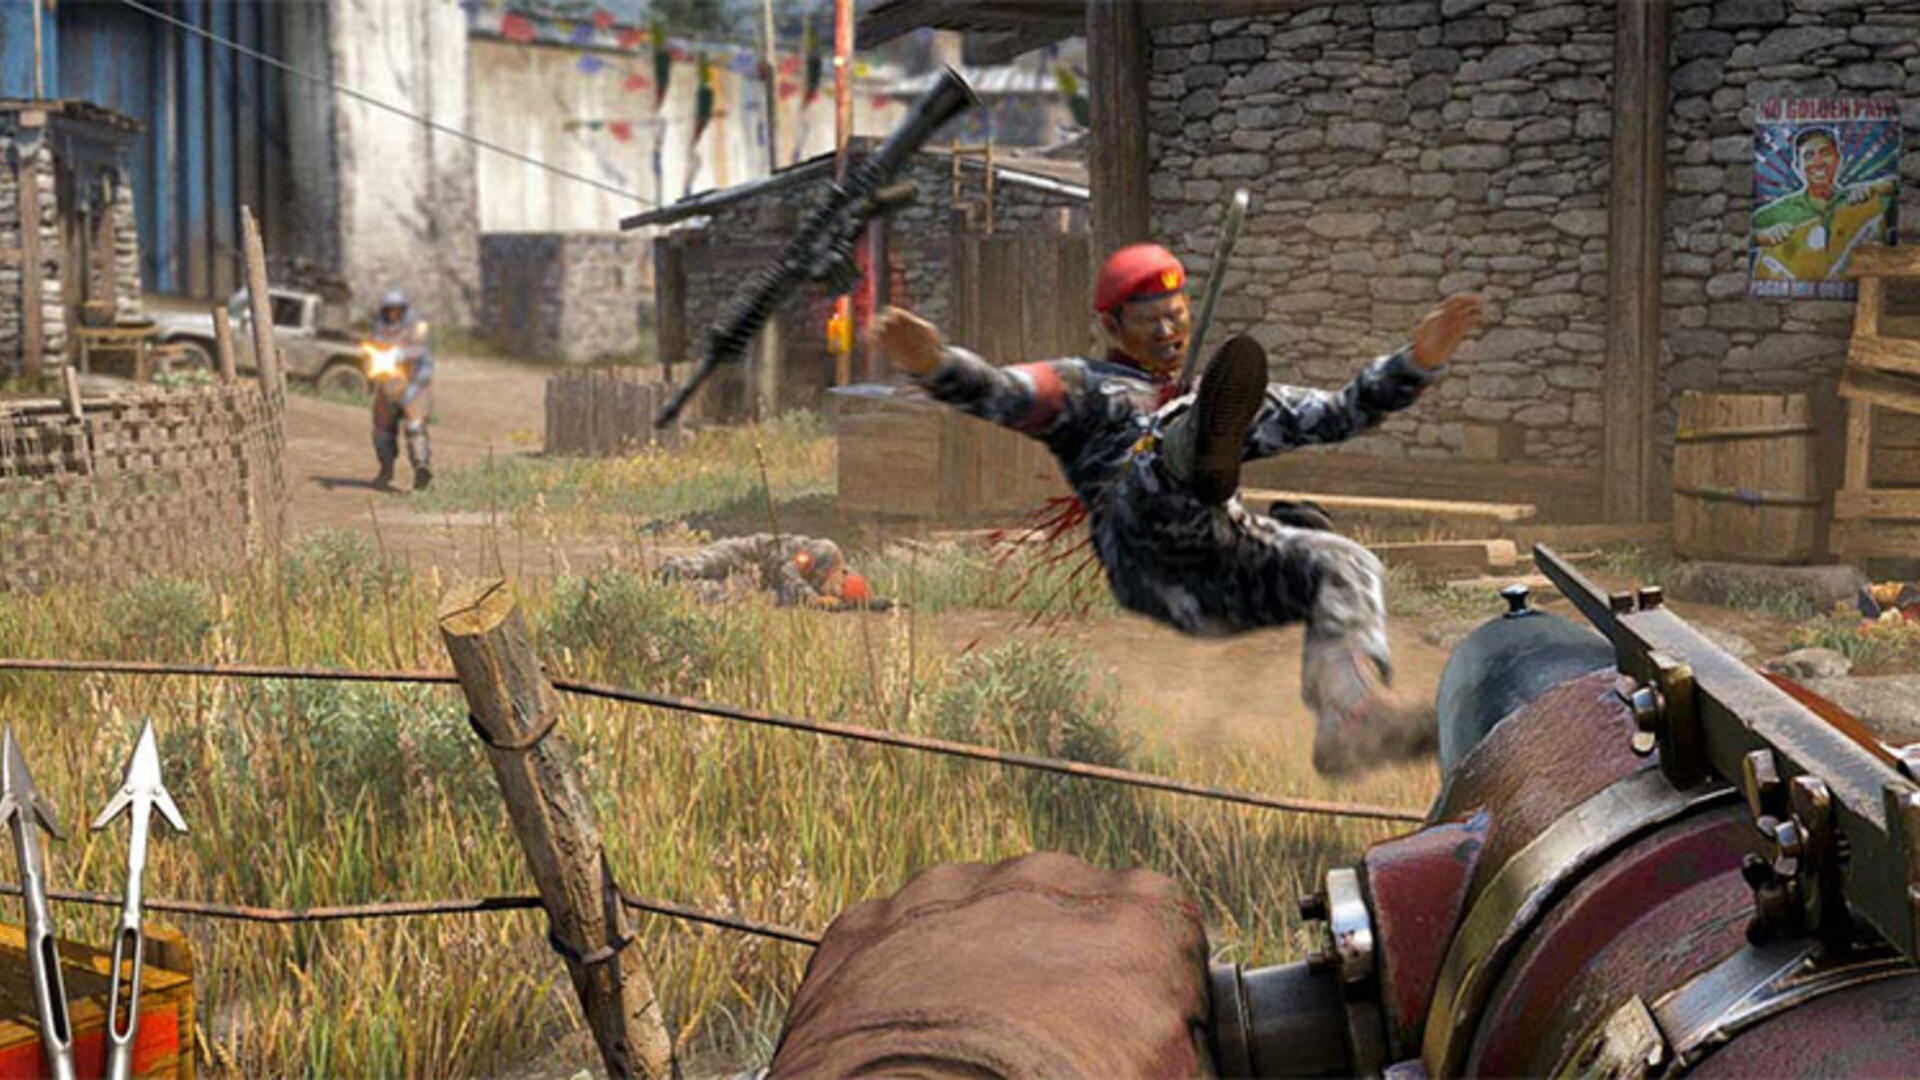 Far Cry 4 Strategy Guide: How to Liberate Outposts, Use animals effectively, Avoid being Detected, Not Trip Alarms